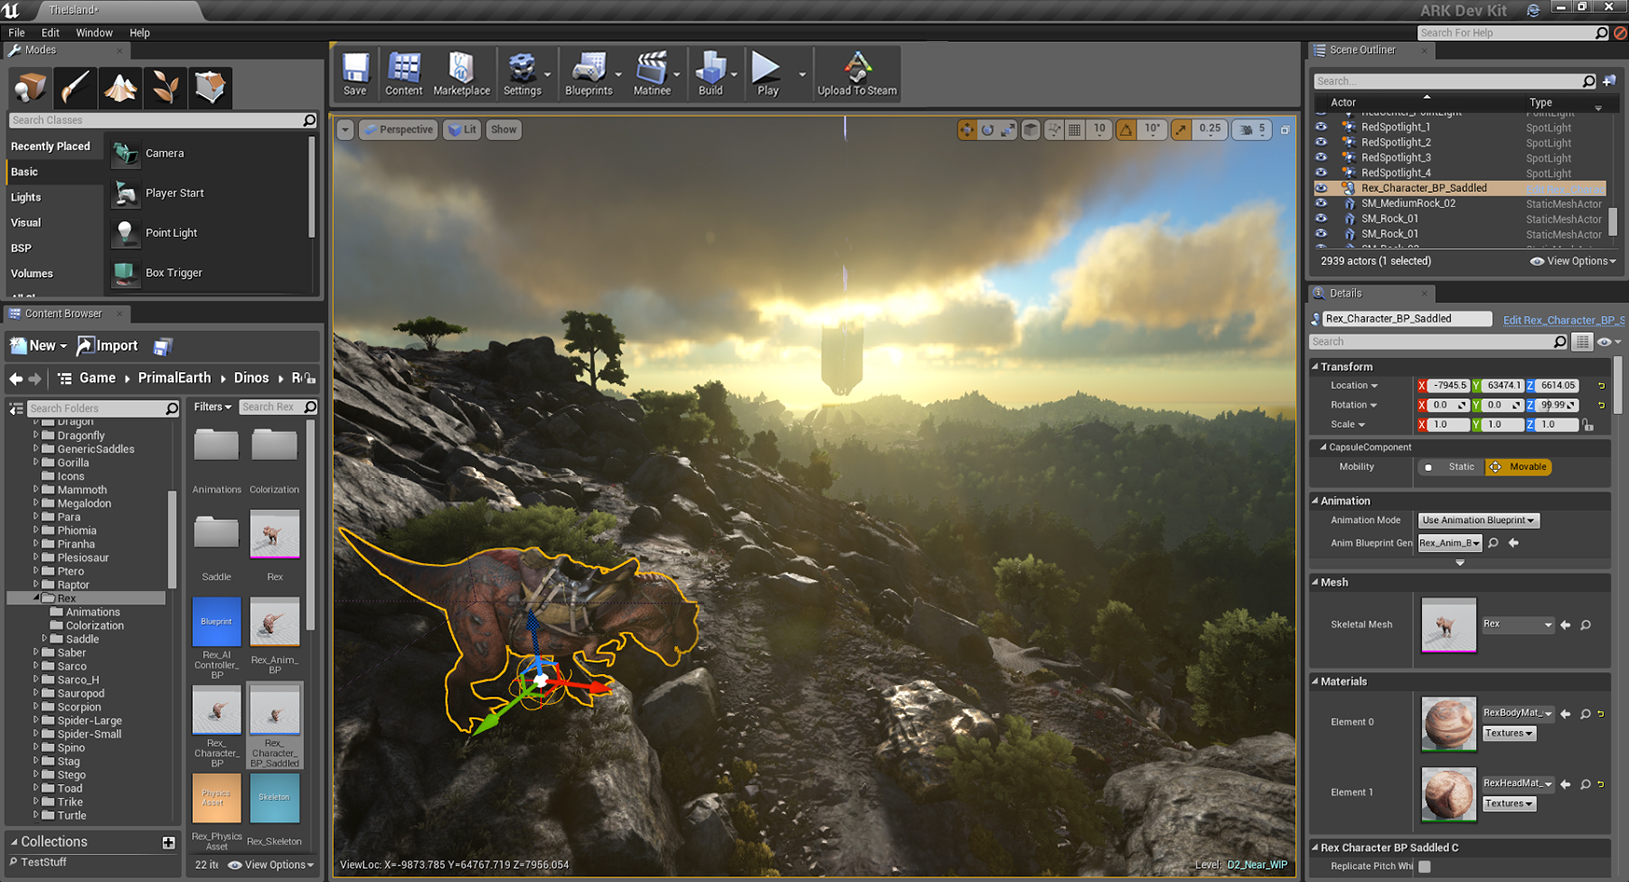 Ark survival evolved dev kit update ark survival evolved servers news image malvernweather Choice Image